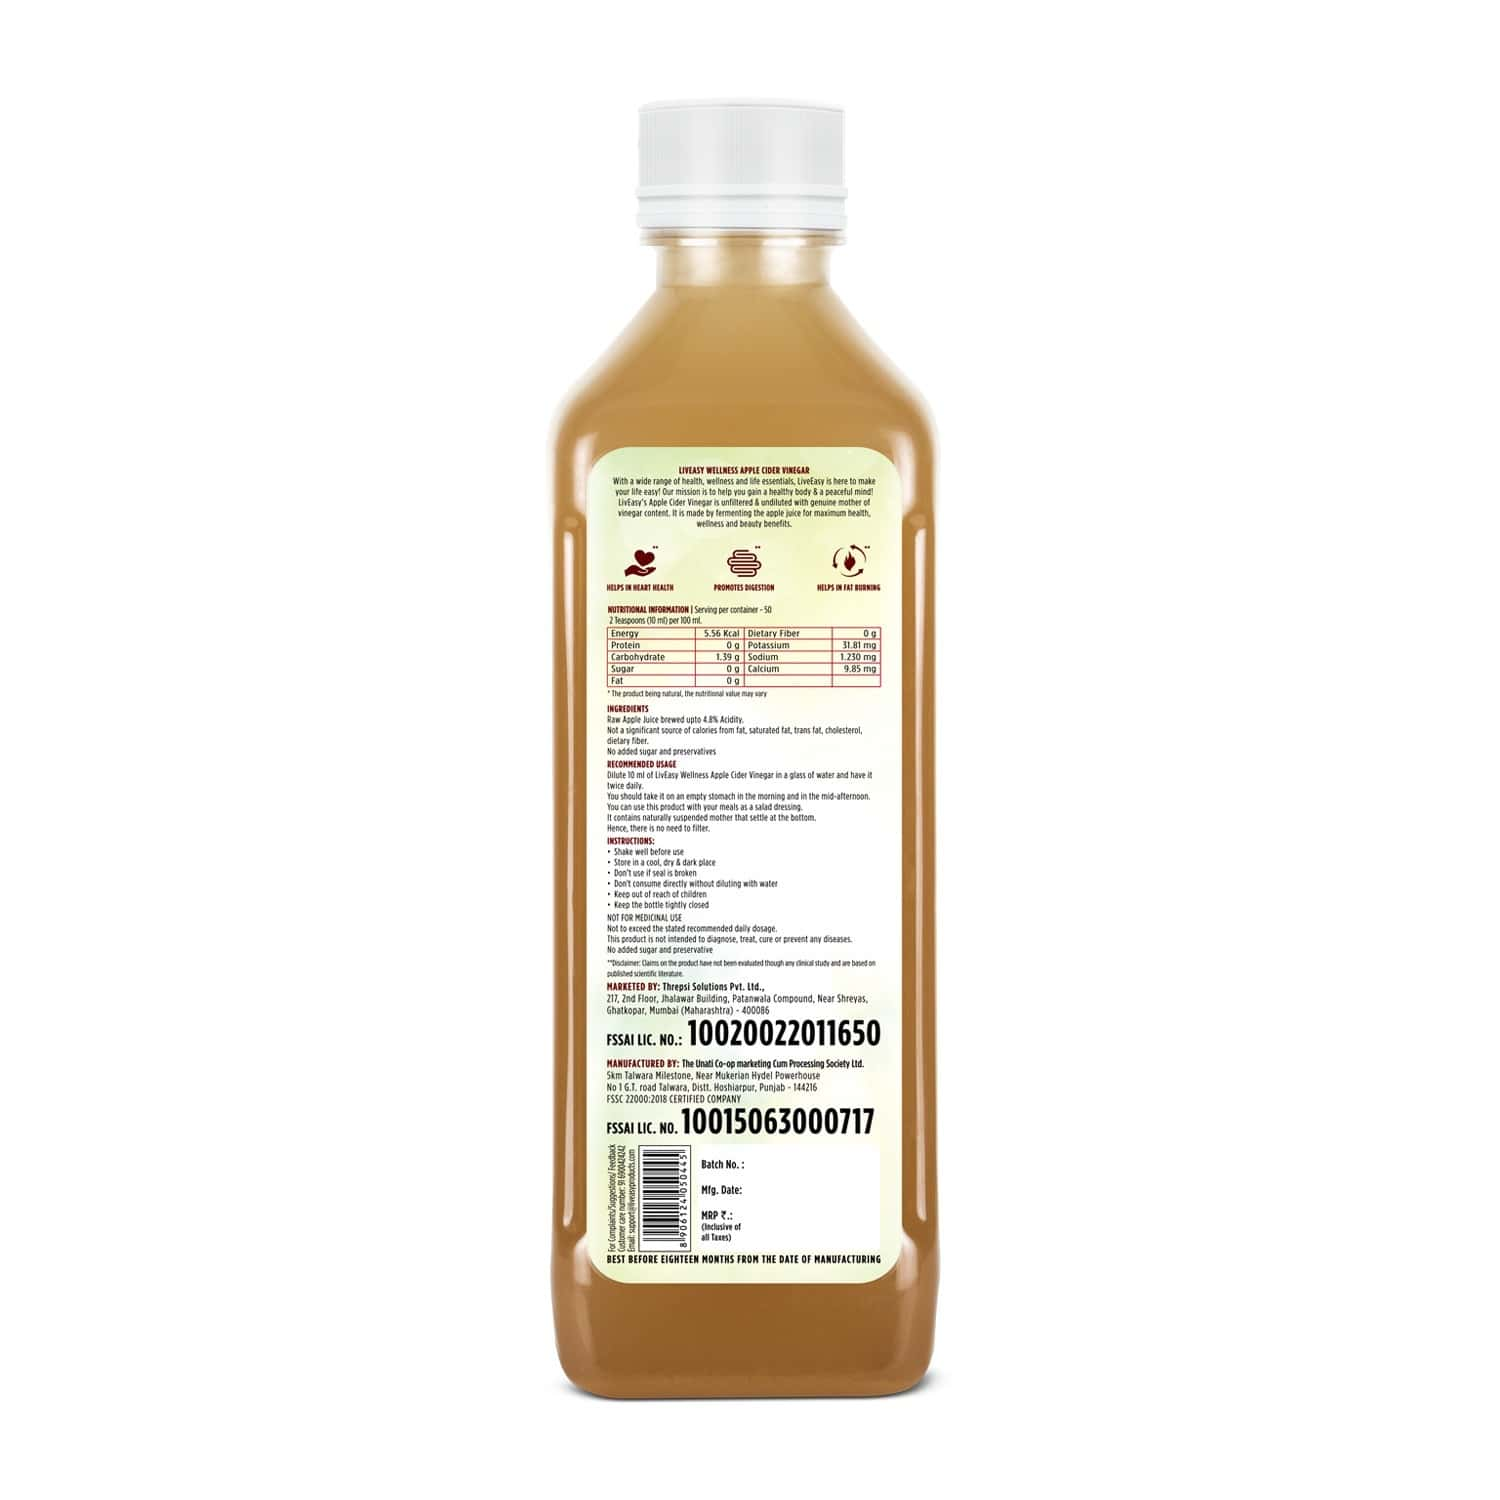 Liveasy Wellness Apple Cider Vinegar With Mother -original Raw & Unfiltered- Supports Weight Management - Bottle Of 500ml